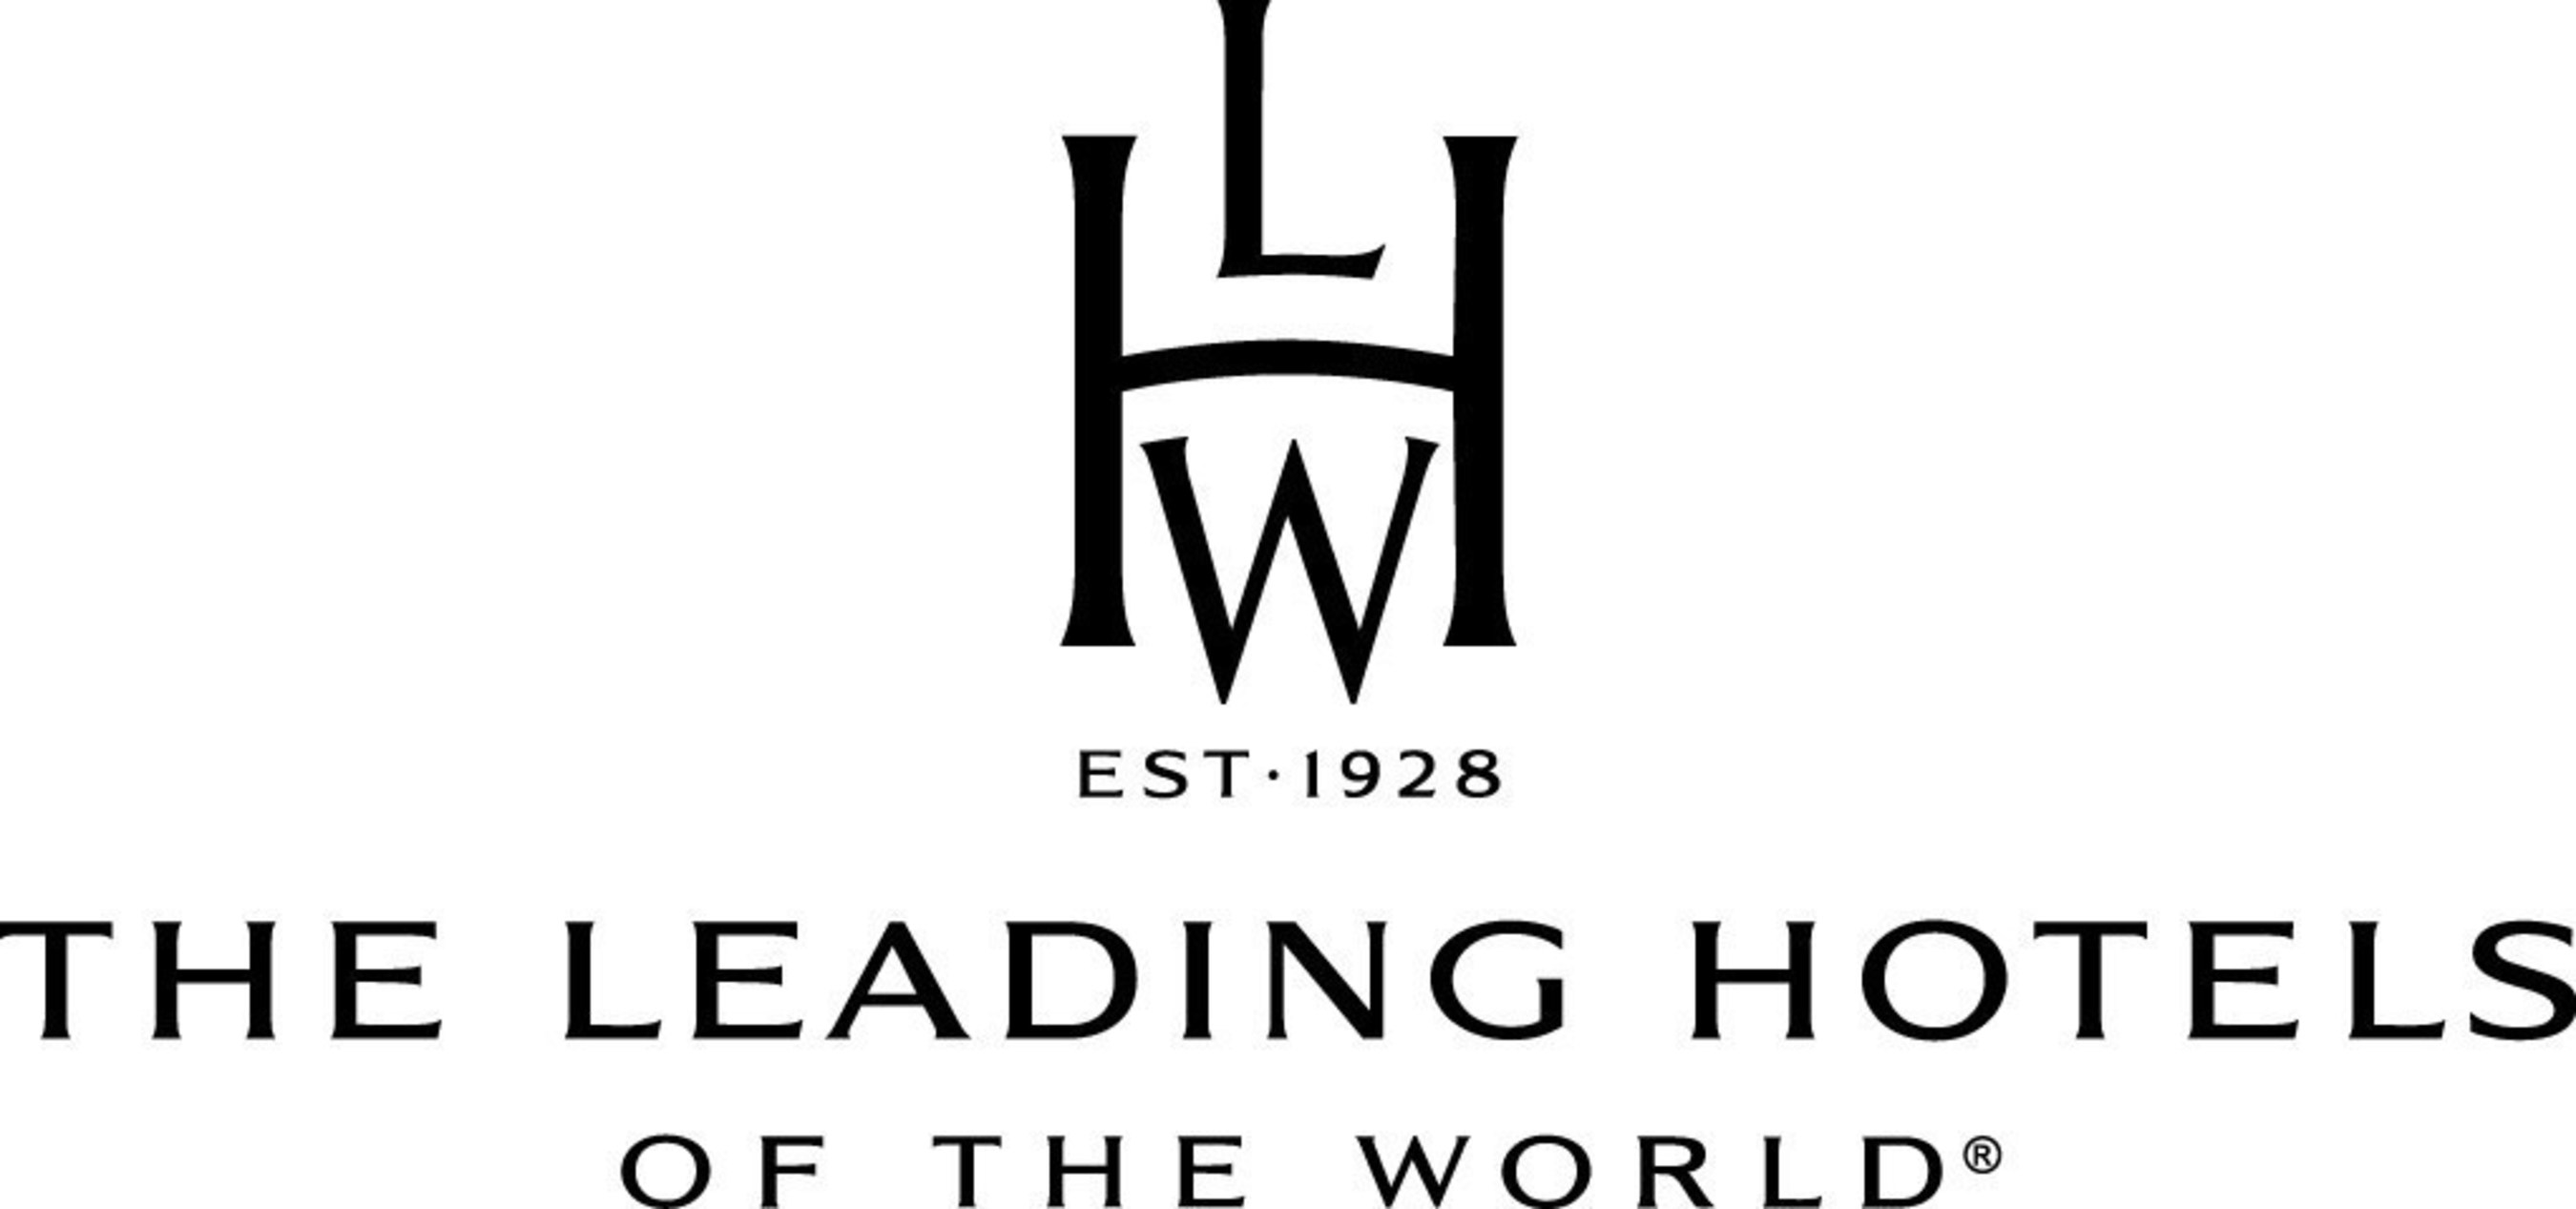 Hotel granduca austin designated as a member of the for The finest hotels of the world